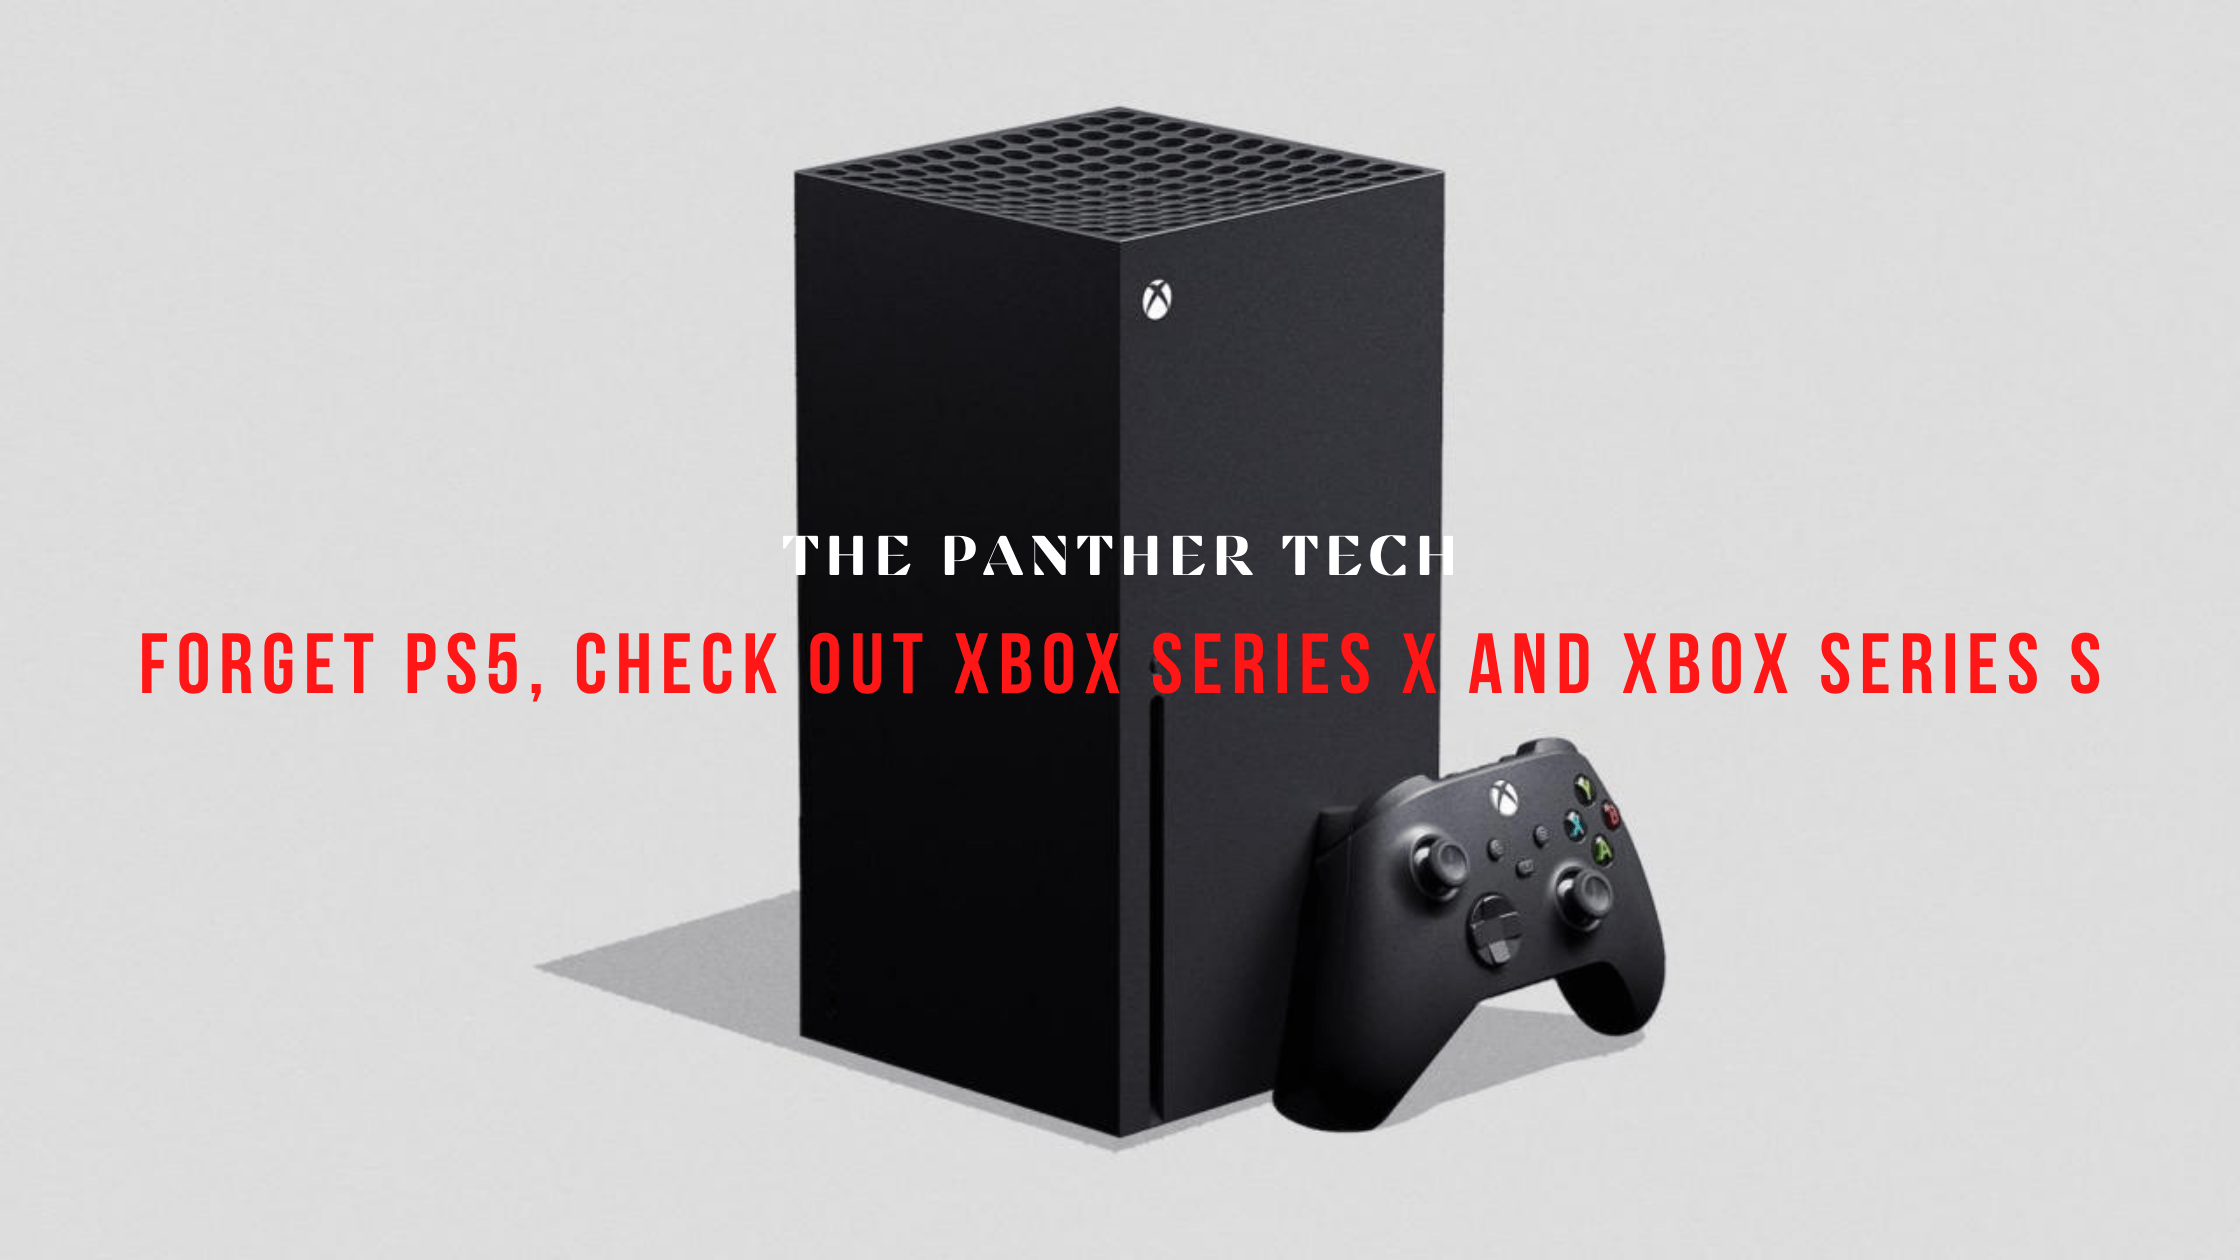 What's The Price Of Xbox Series X